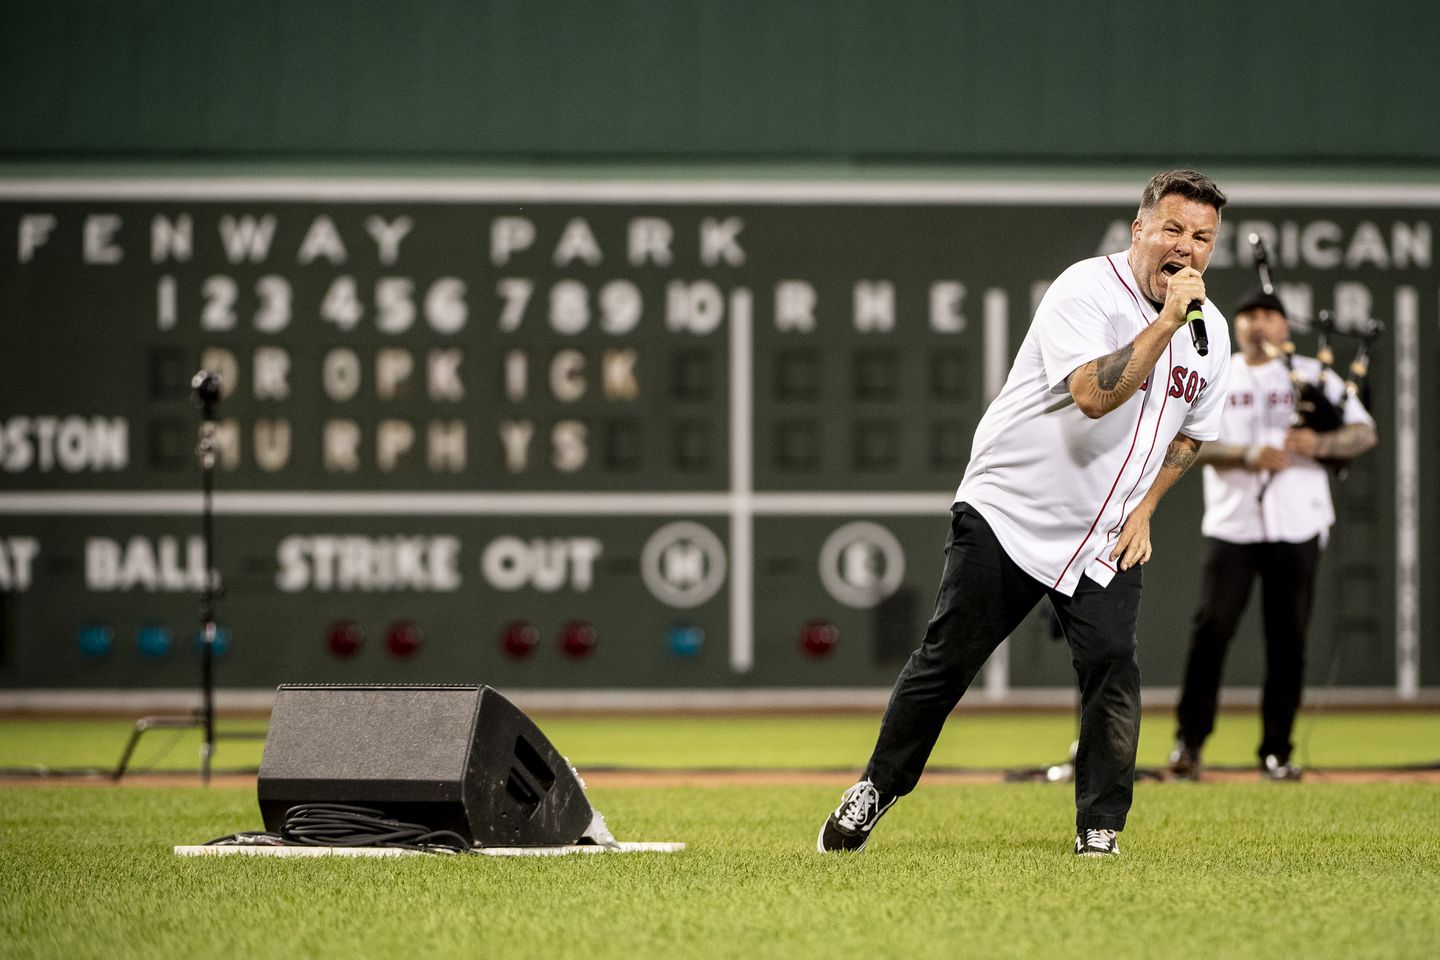 Dropkick Murphys (and Springsteen) fill an empty Fenway with big ...